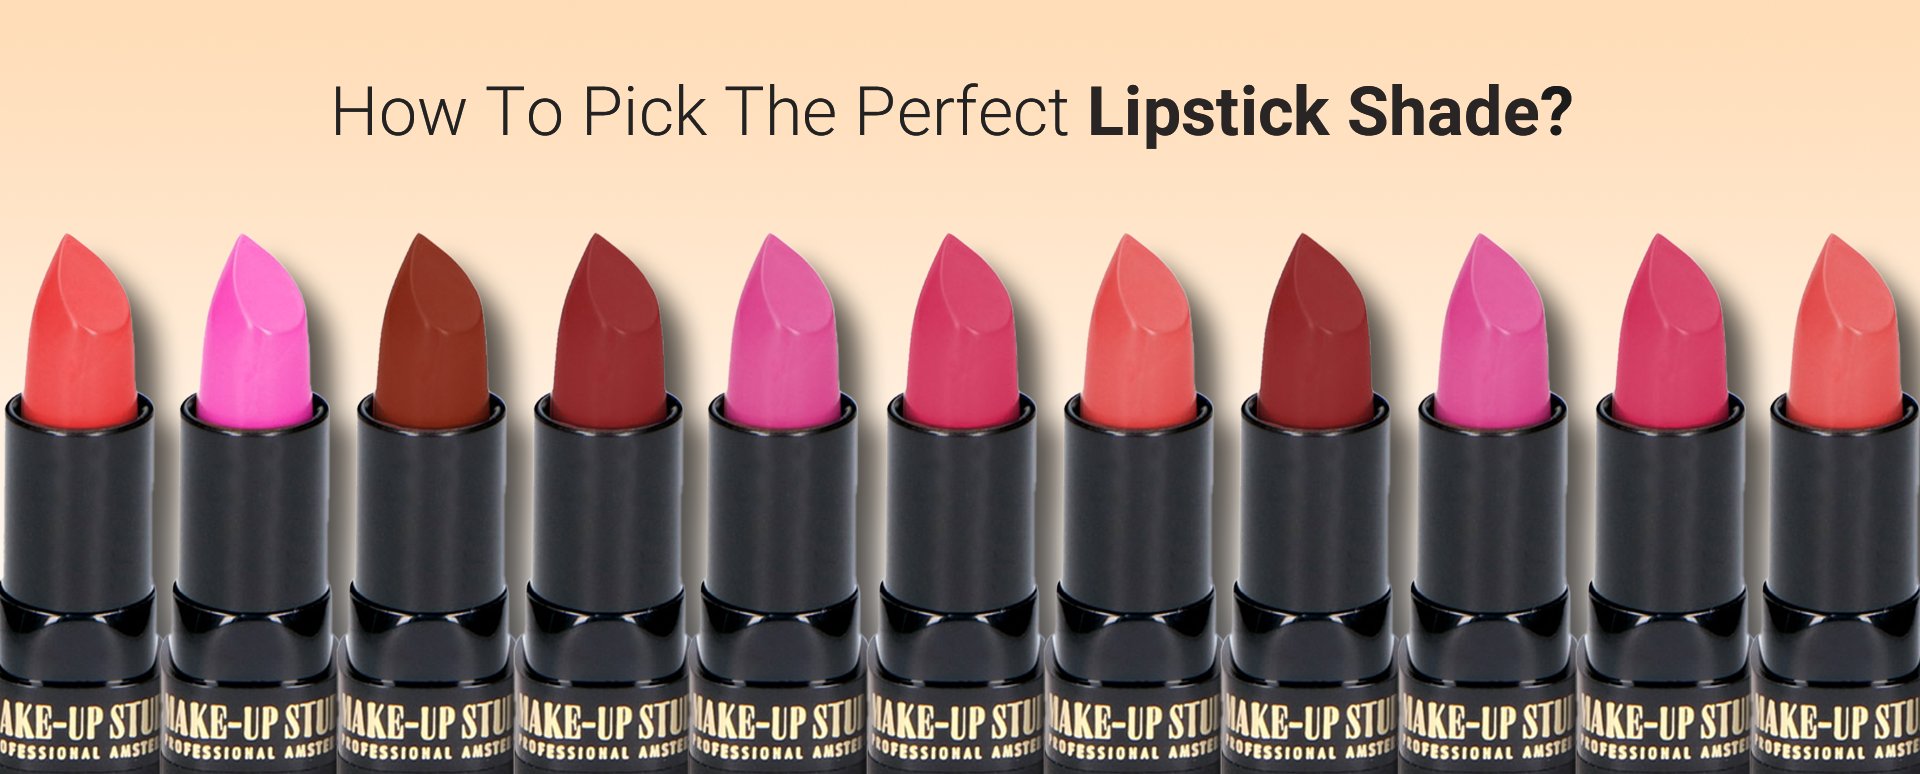 How to pick the Perfect Lipstick Shade?